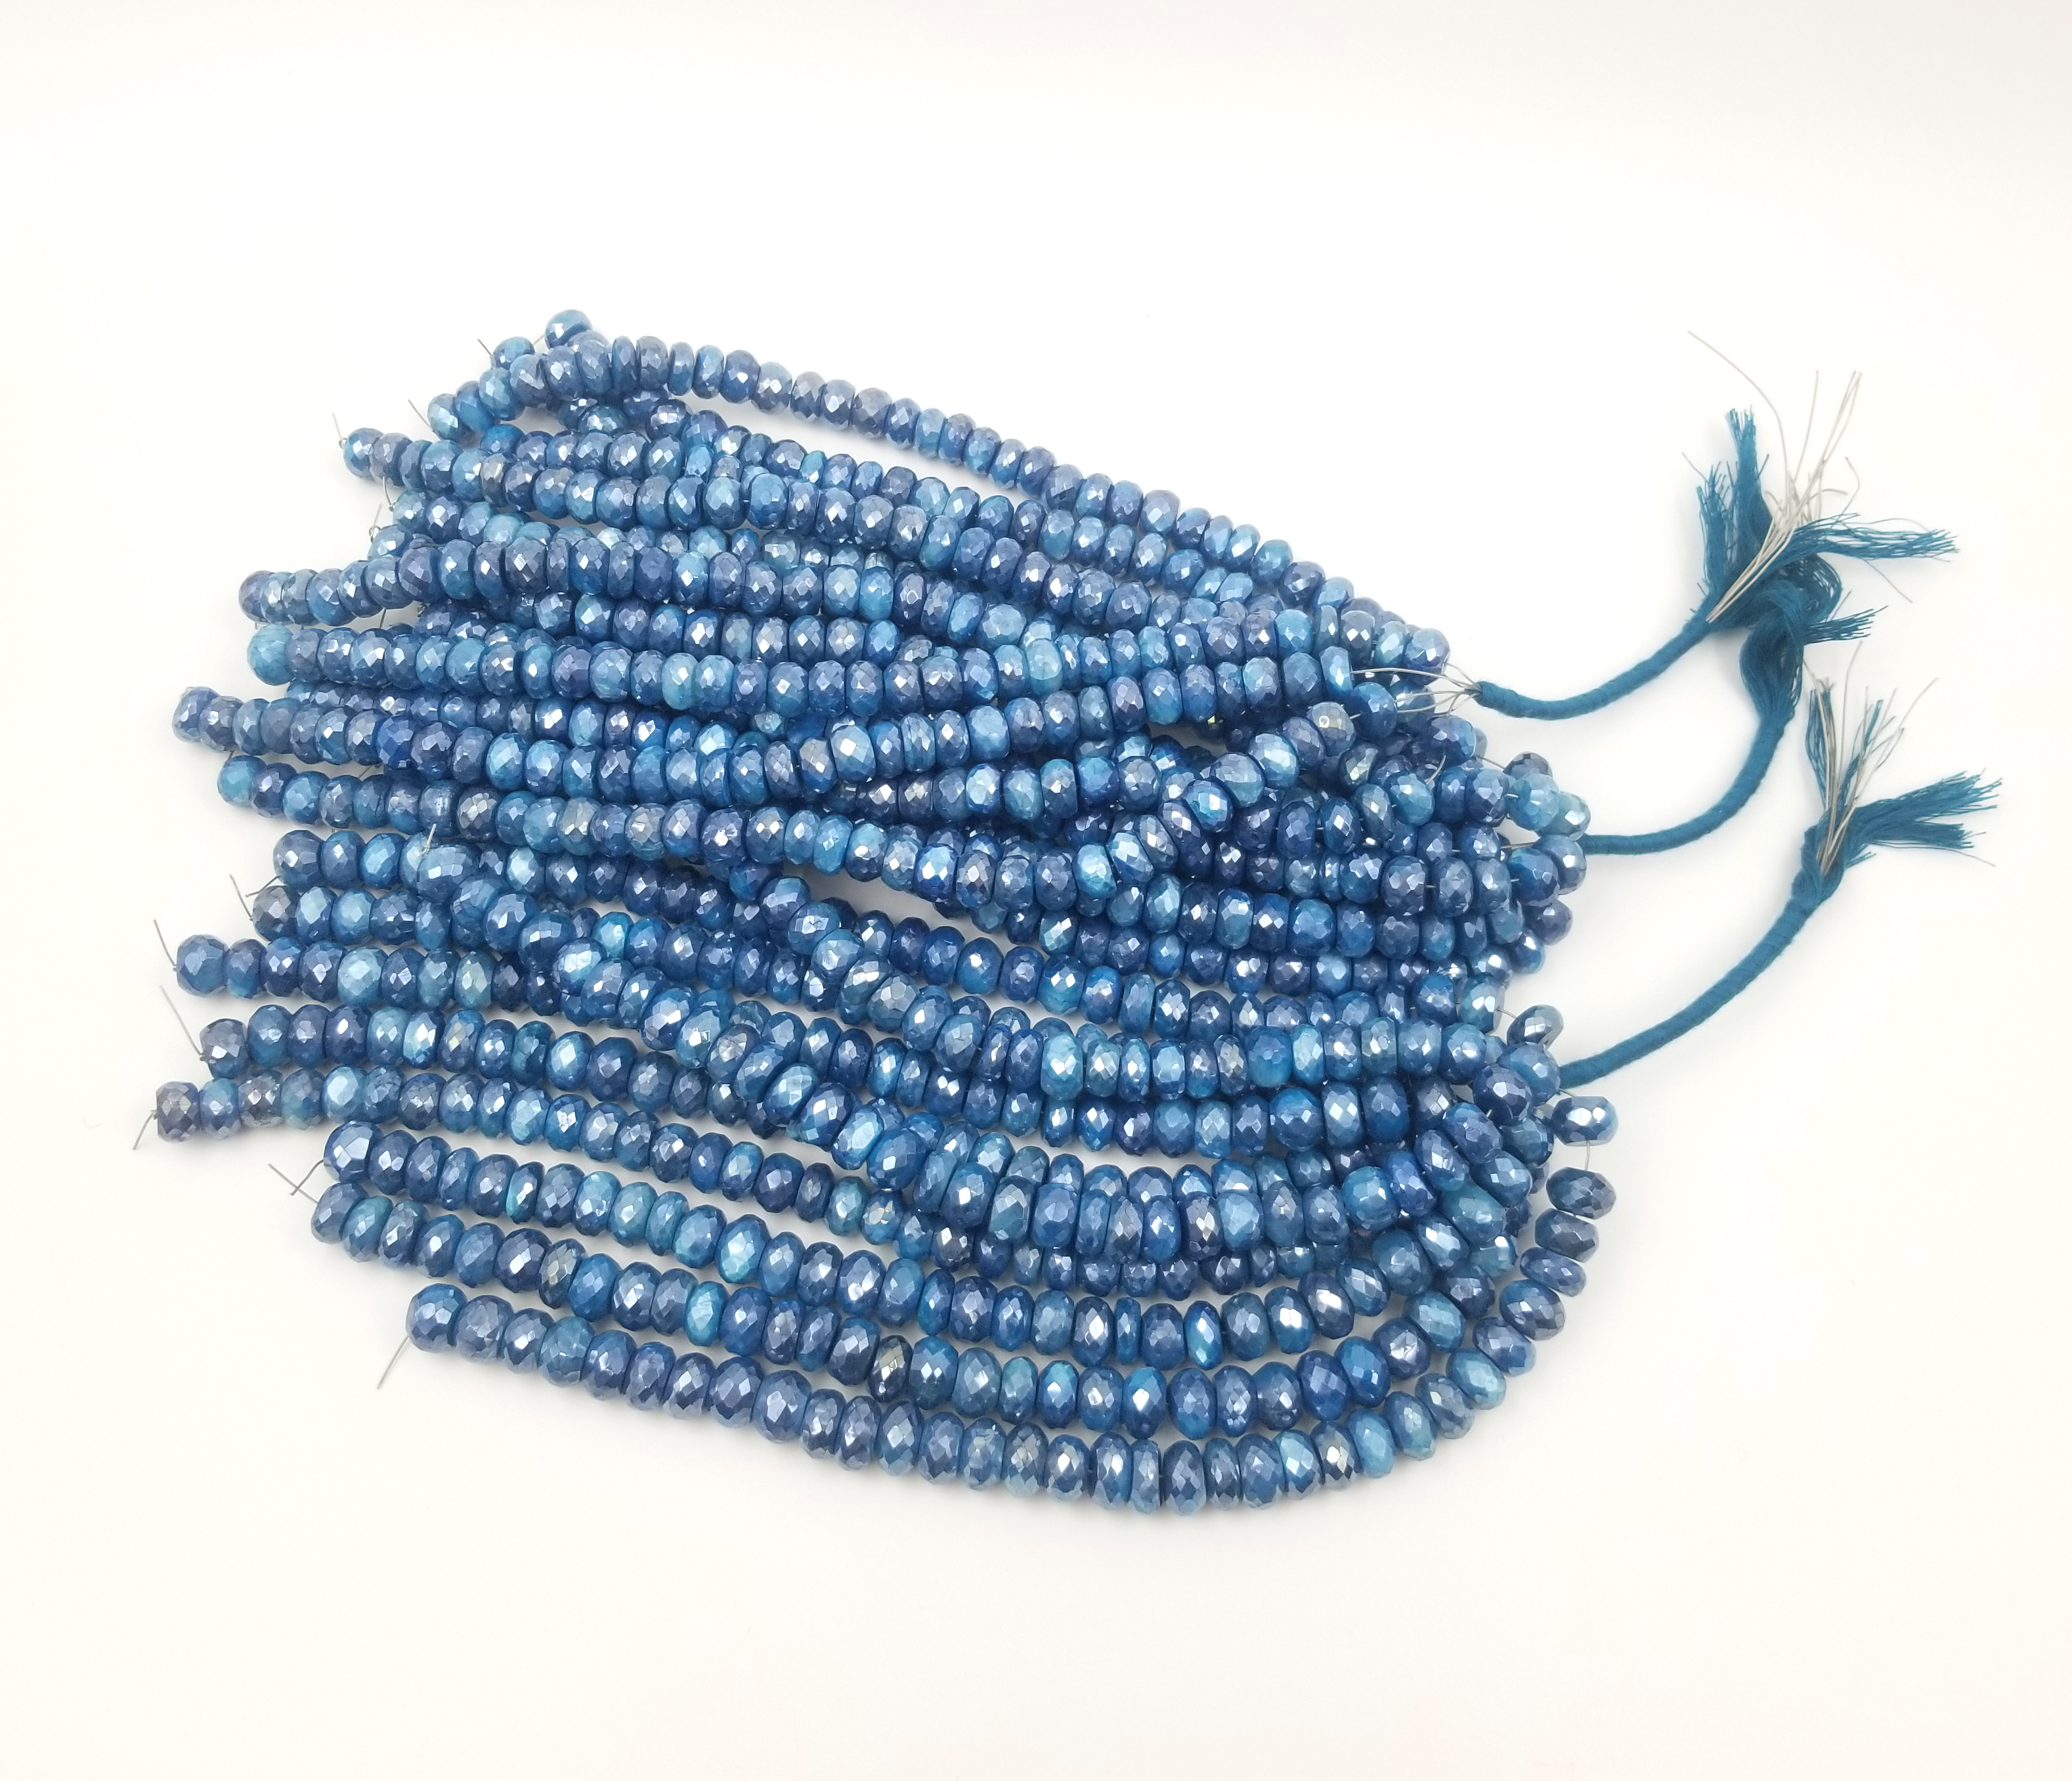 Natural Moonstone Mystic Plated Rondelle Micro Faceted Cut Gemstone Beads,Mystic Plated Moonstone Beads,Rondelle Cut Gemstone Beads.